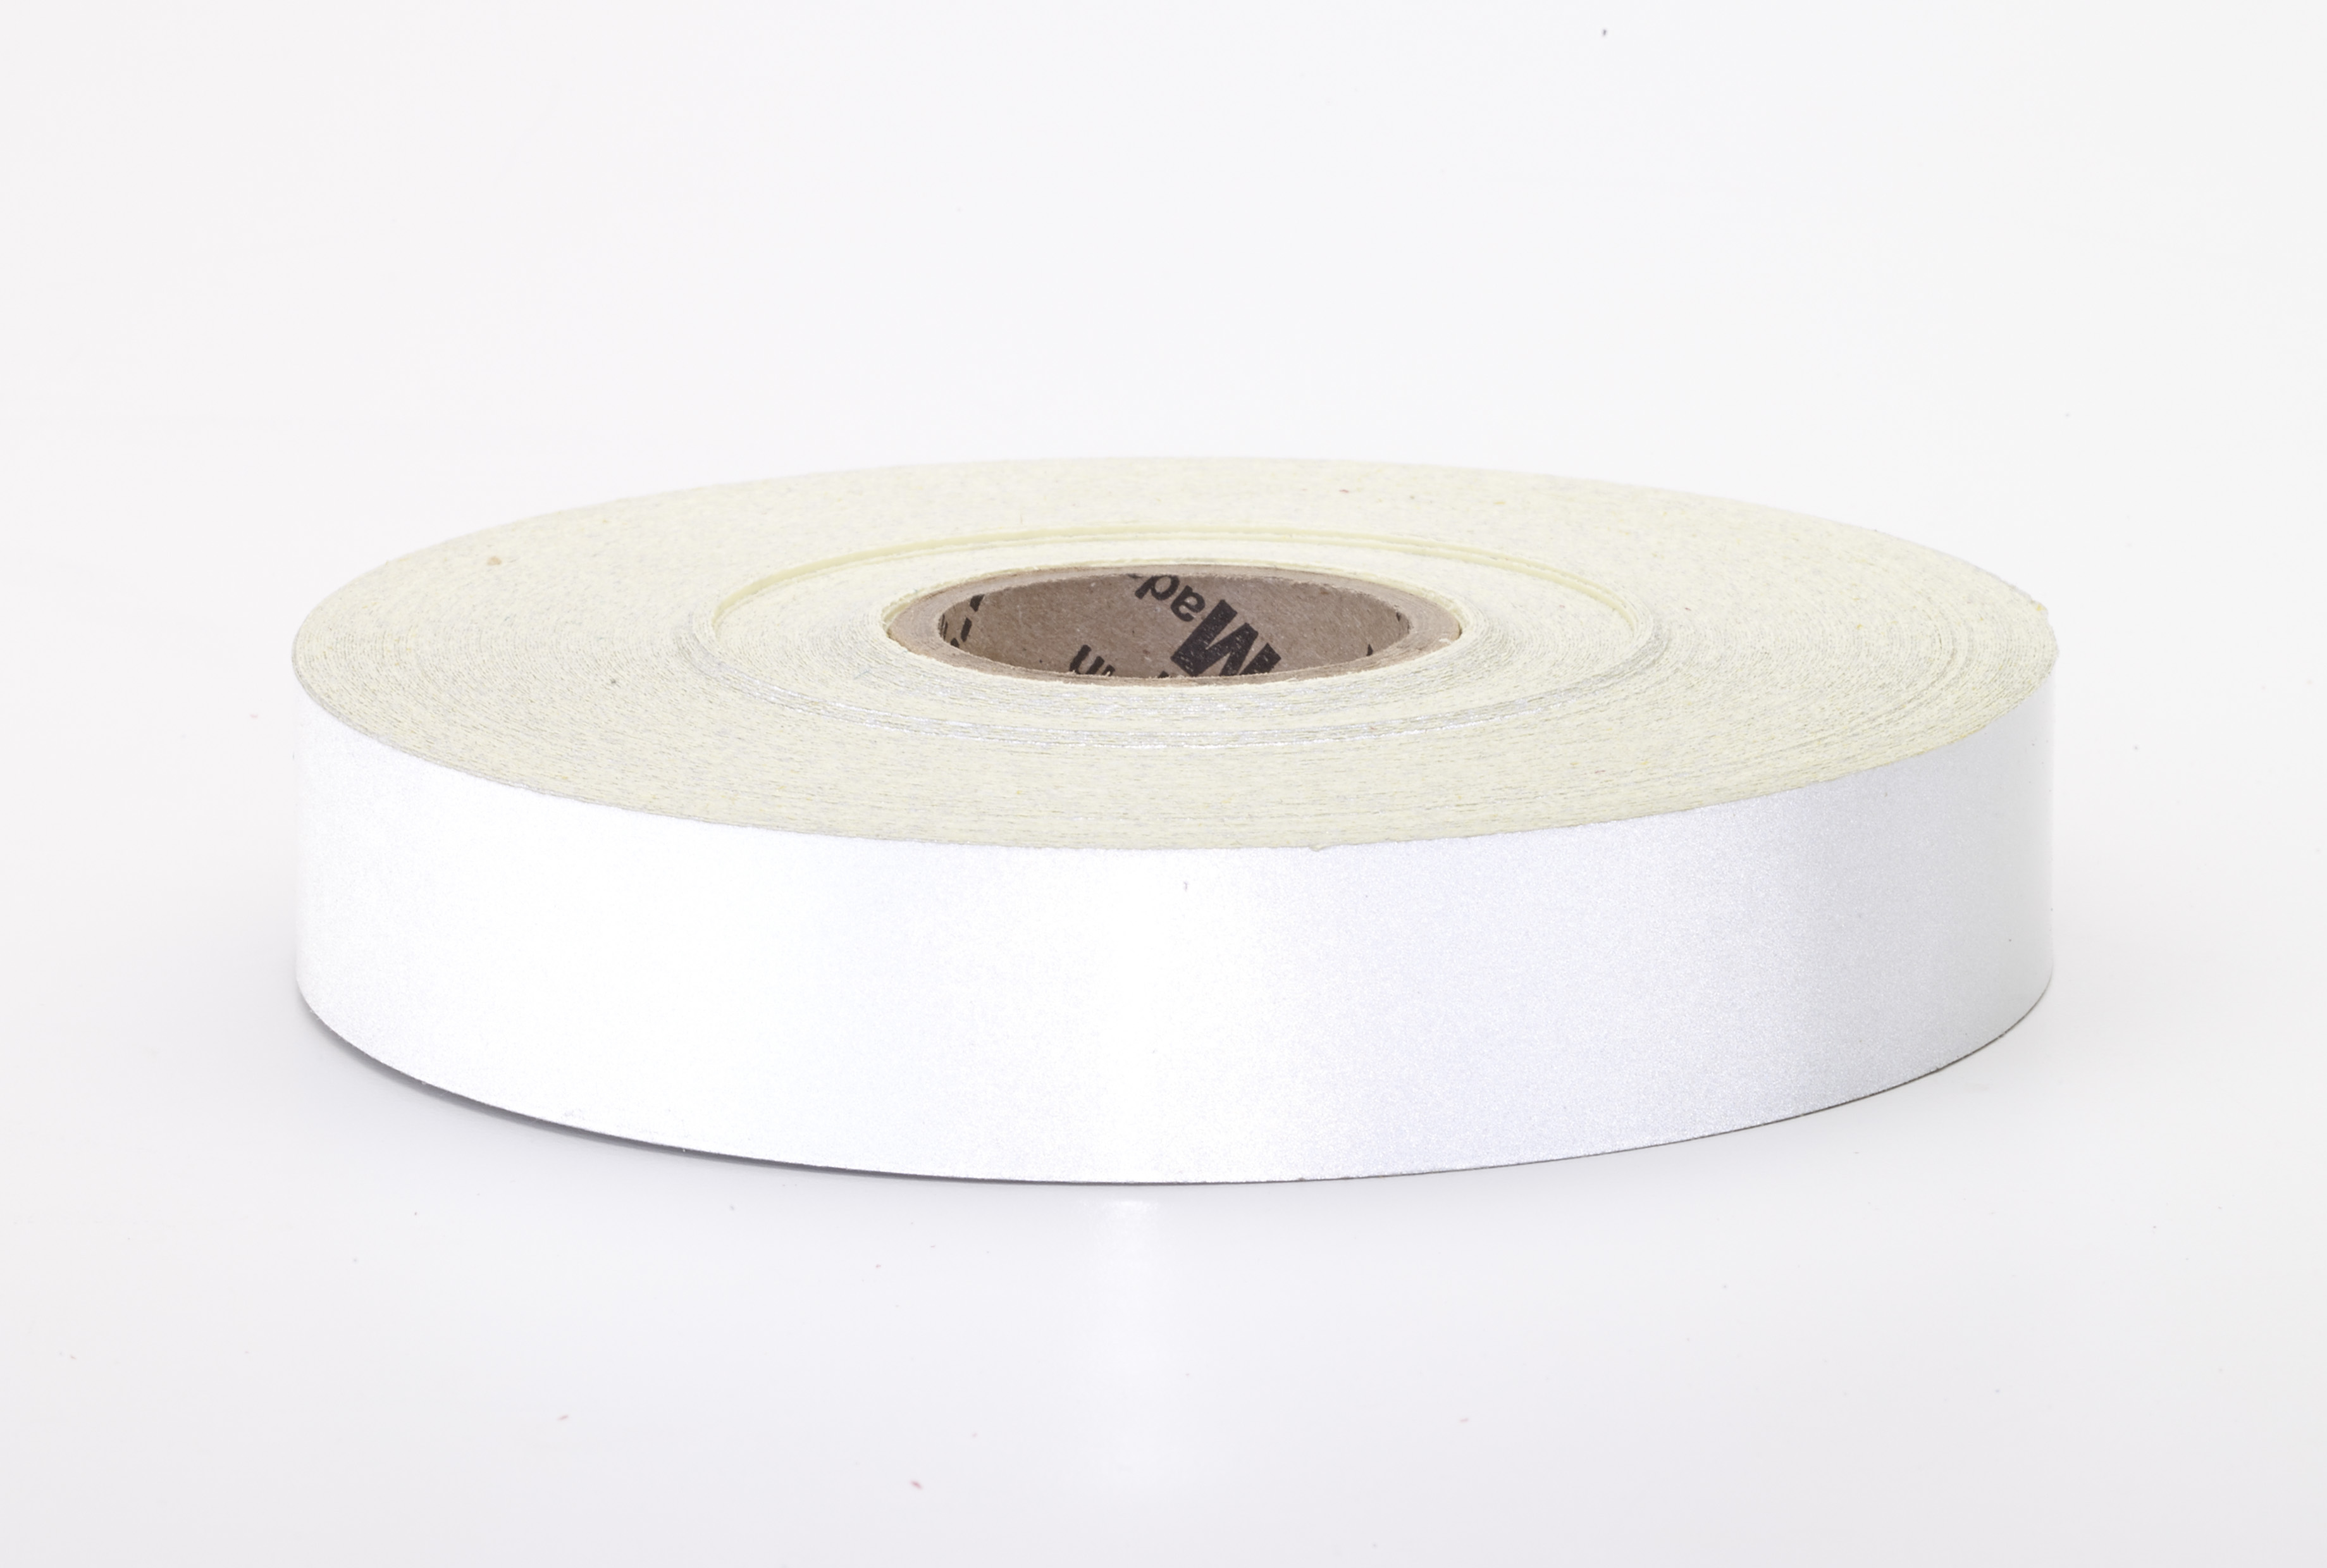 17786-10-1000, Engineering Grade Retro Reflective Adhesive Tape, 50 yds Length x 1 Width, White, Mutual Industries